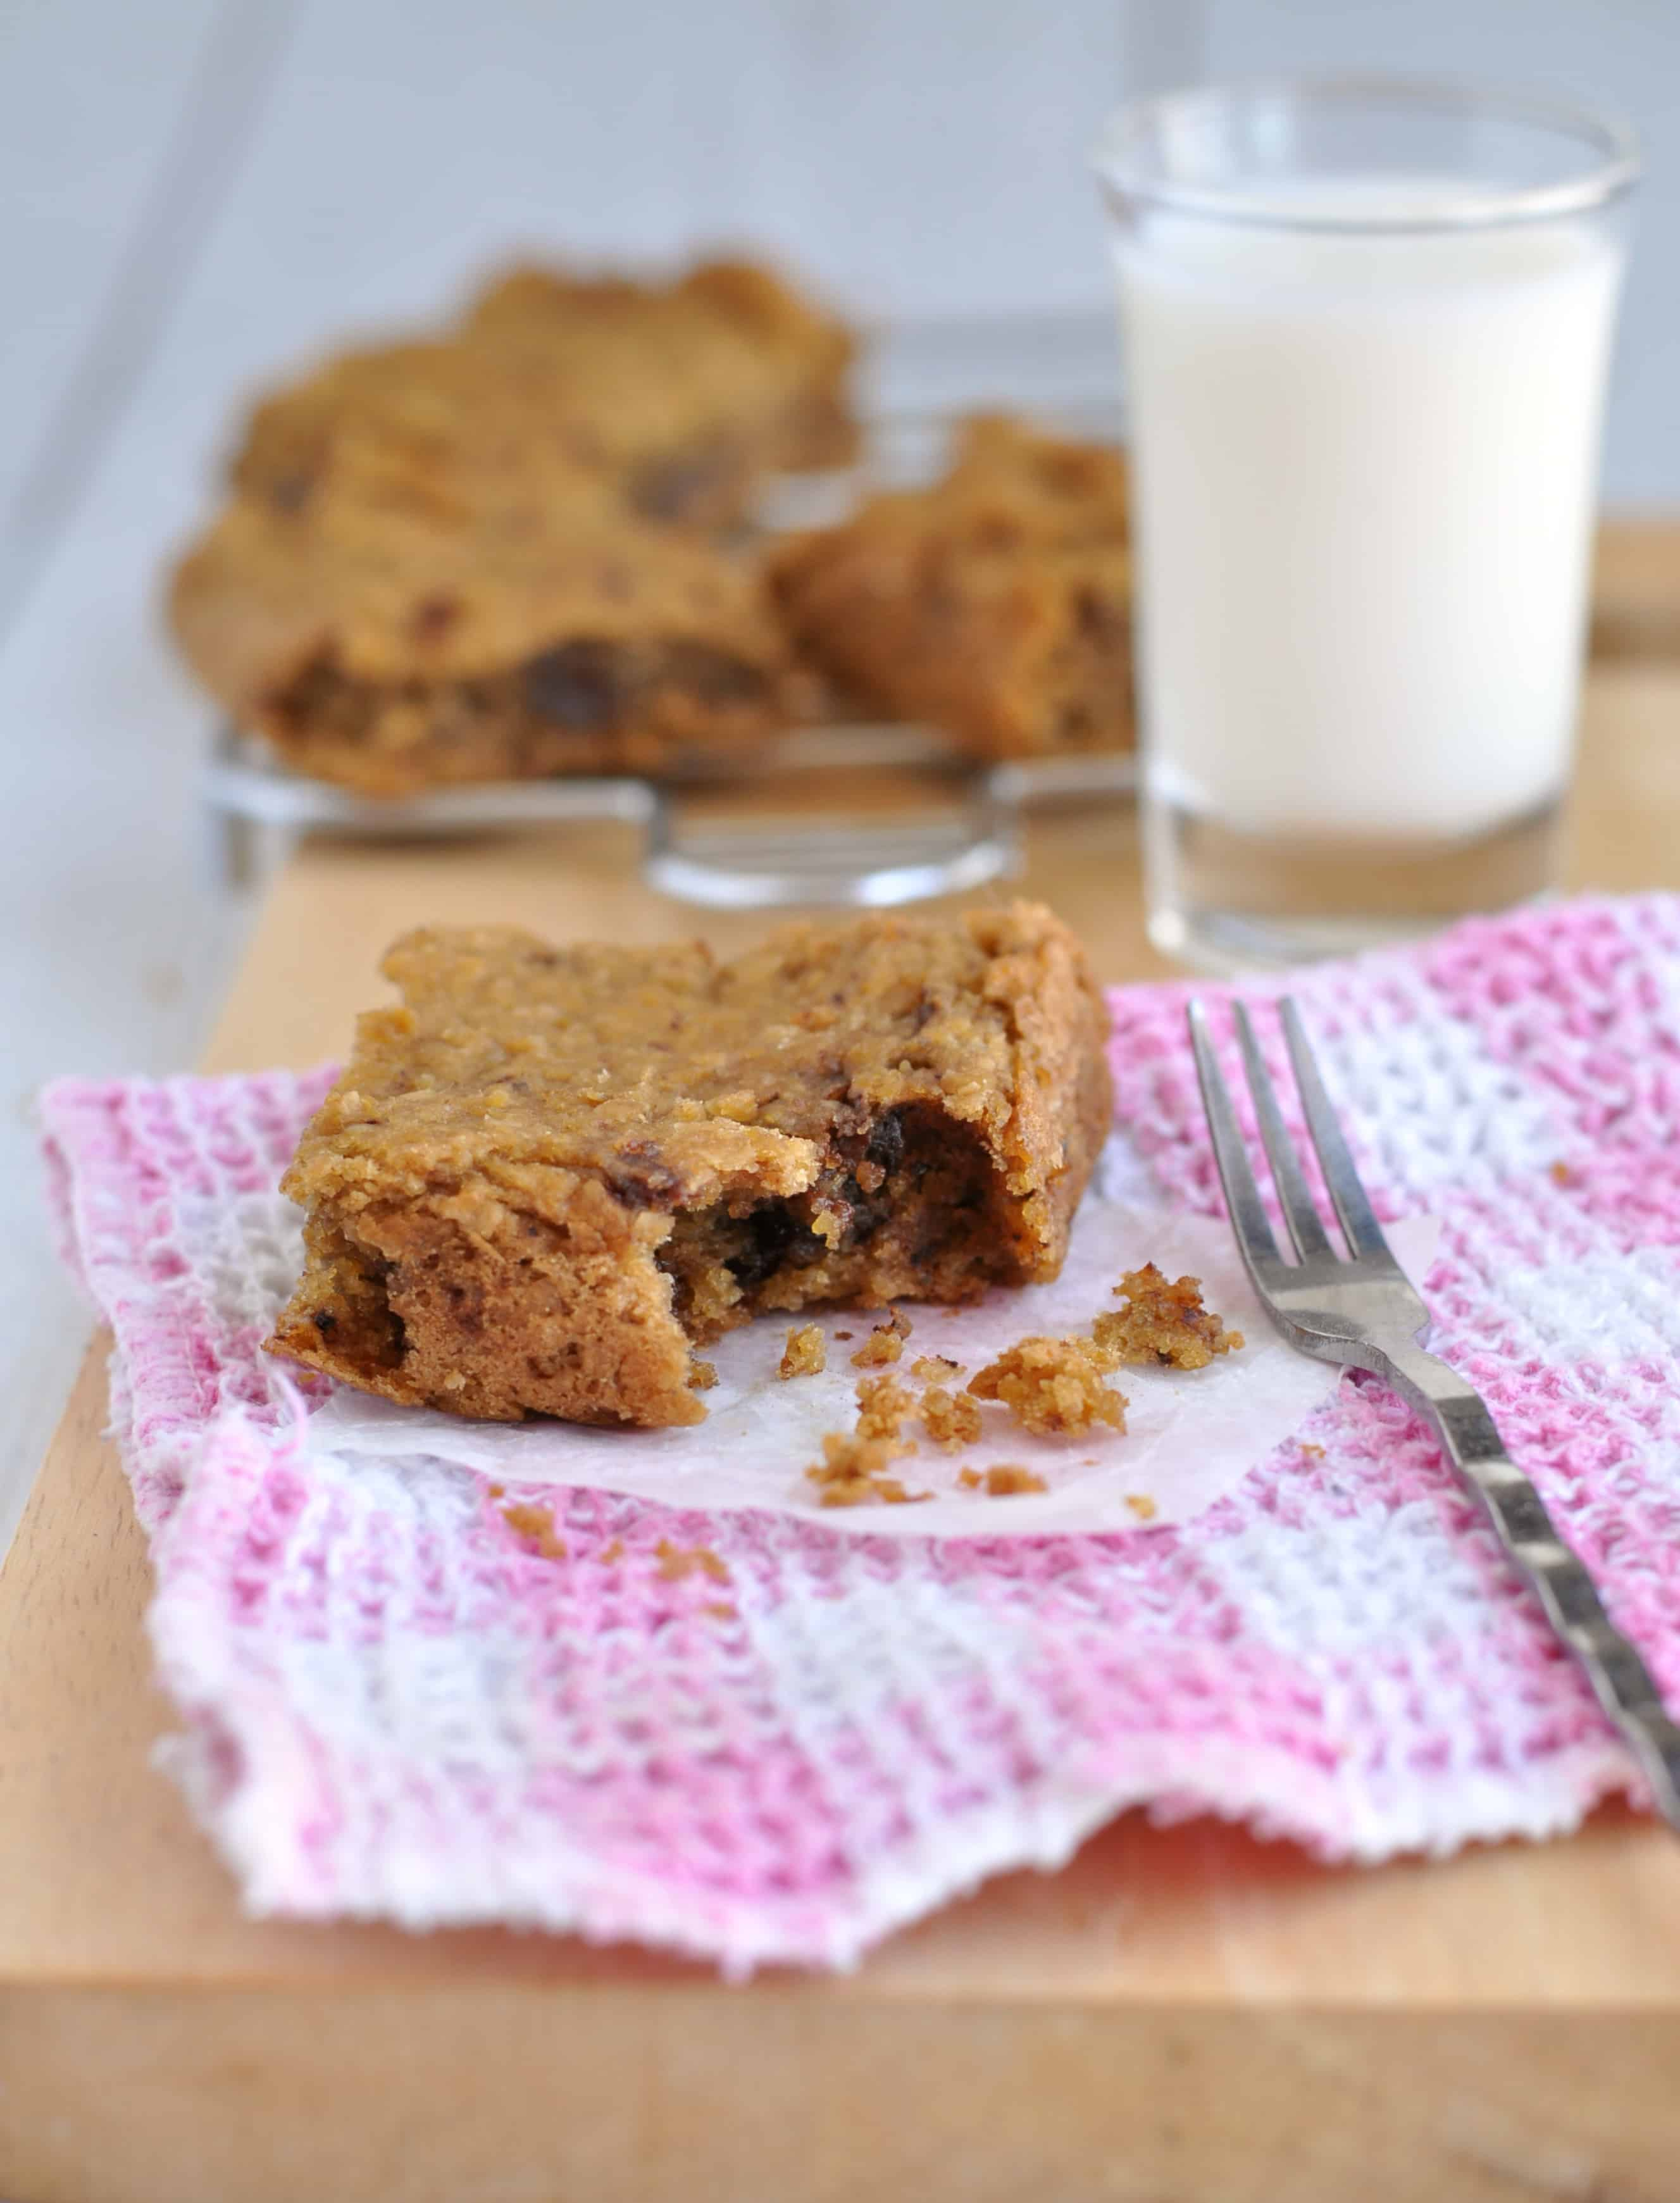 A Healthy Chocolate Chip Cookie Dough Bar with a bite taken out of it